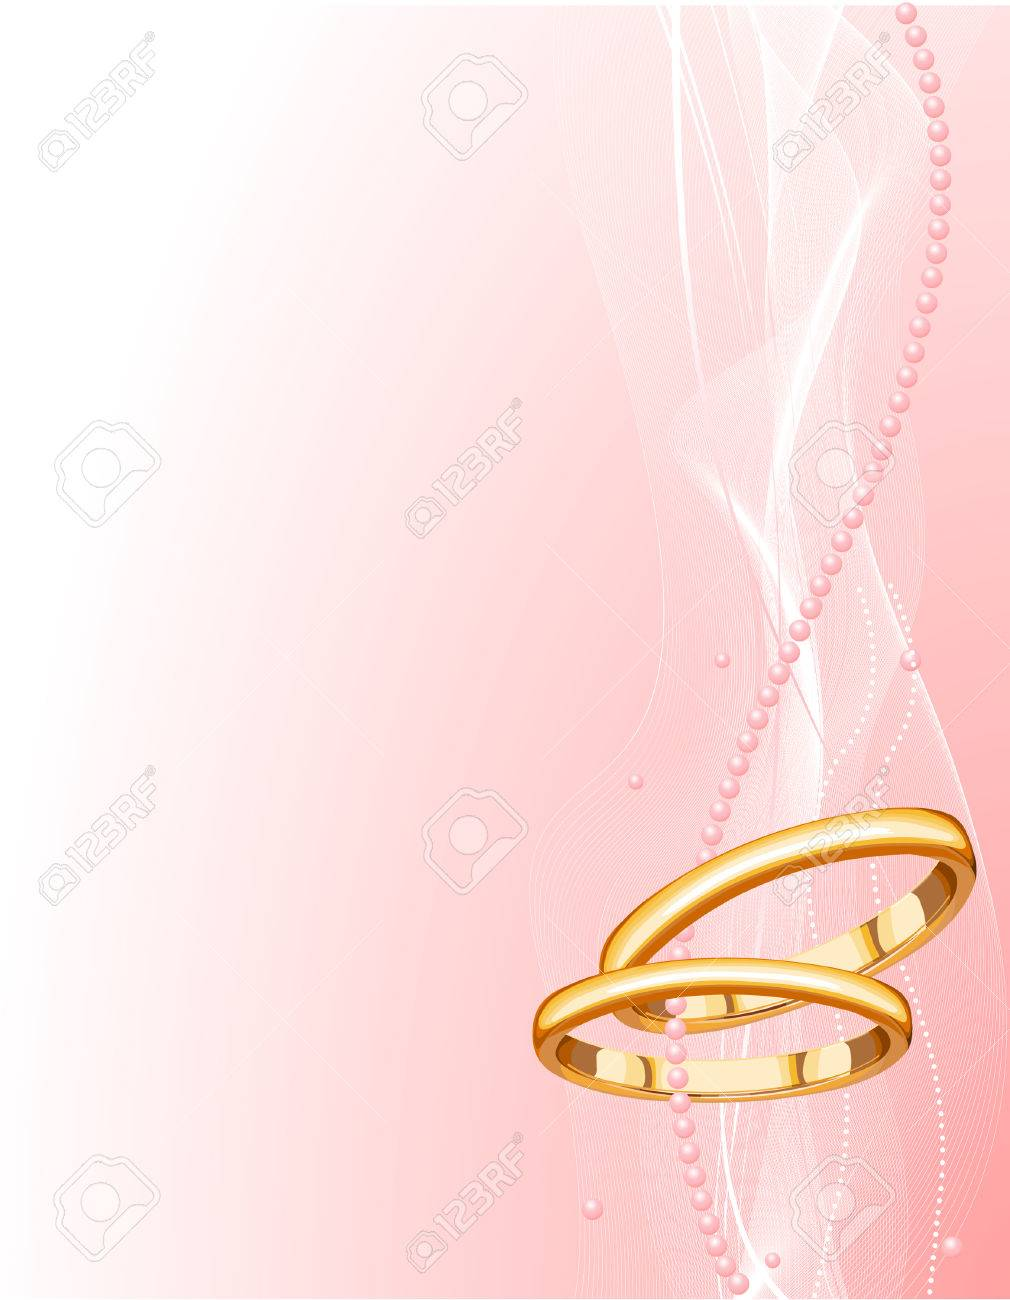 Illustrated Beautiful Wedding Rings Background With Place For ...